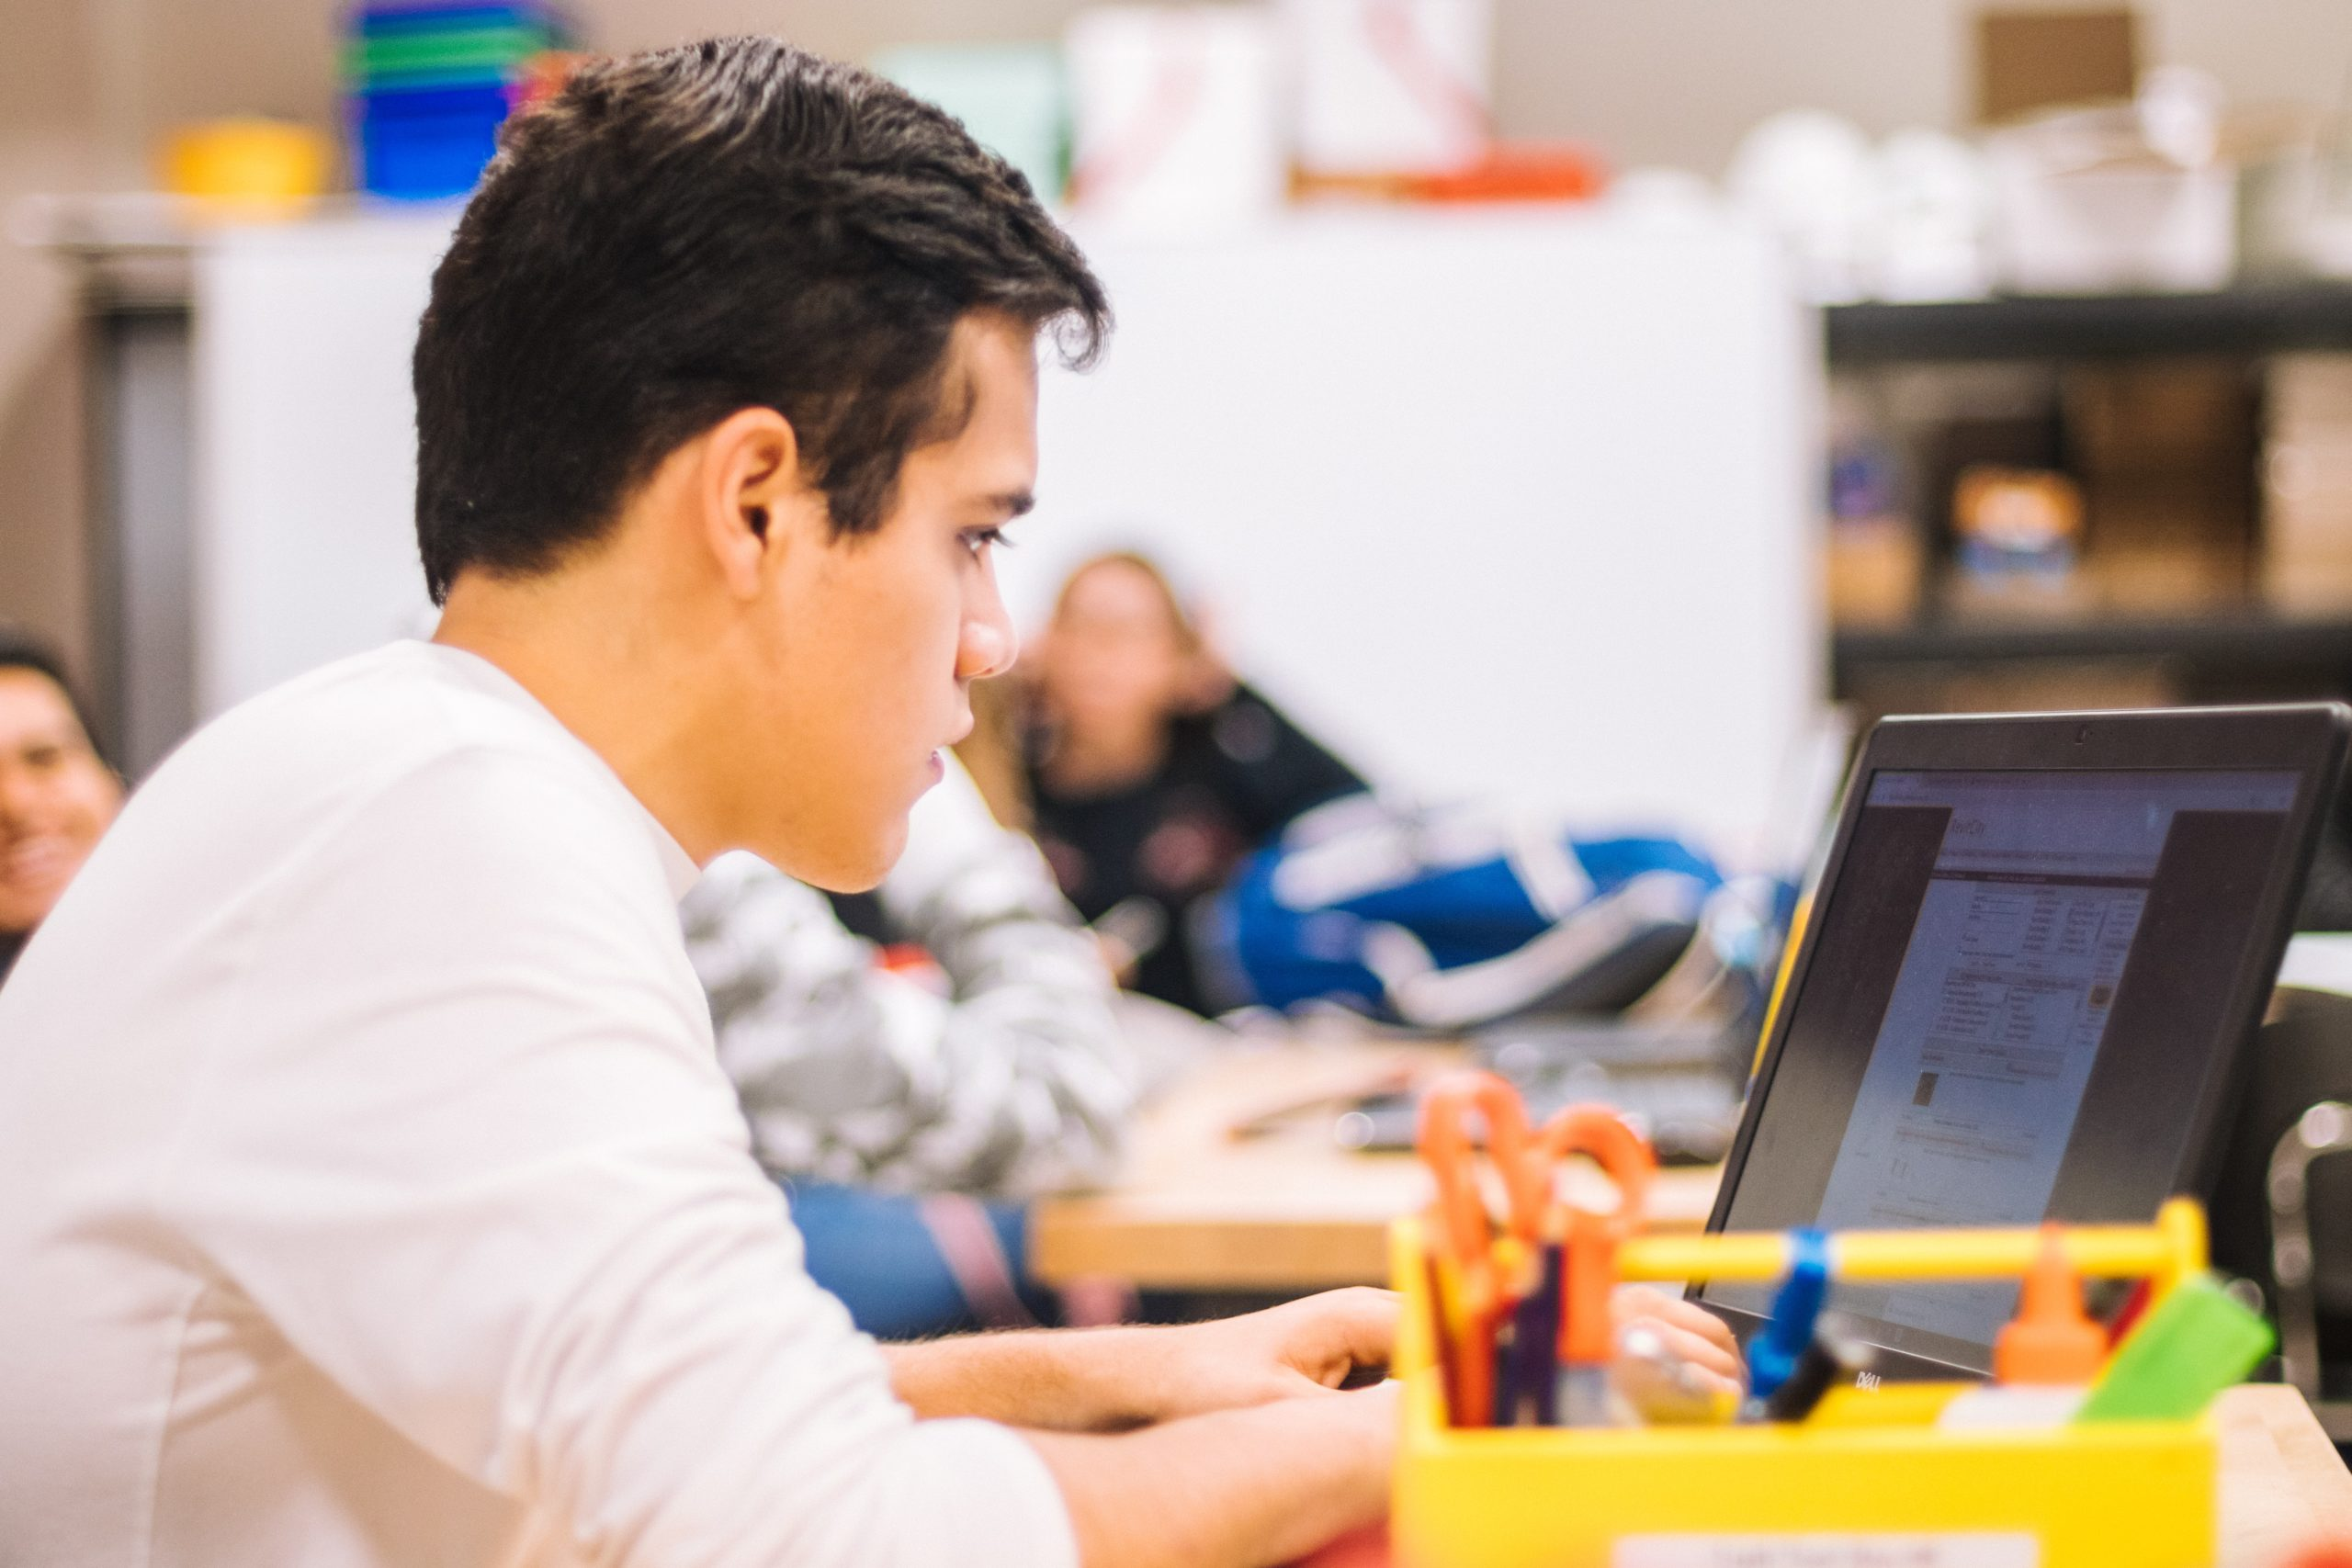 a teenager sits at a computer in school